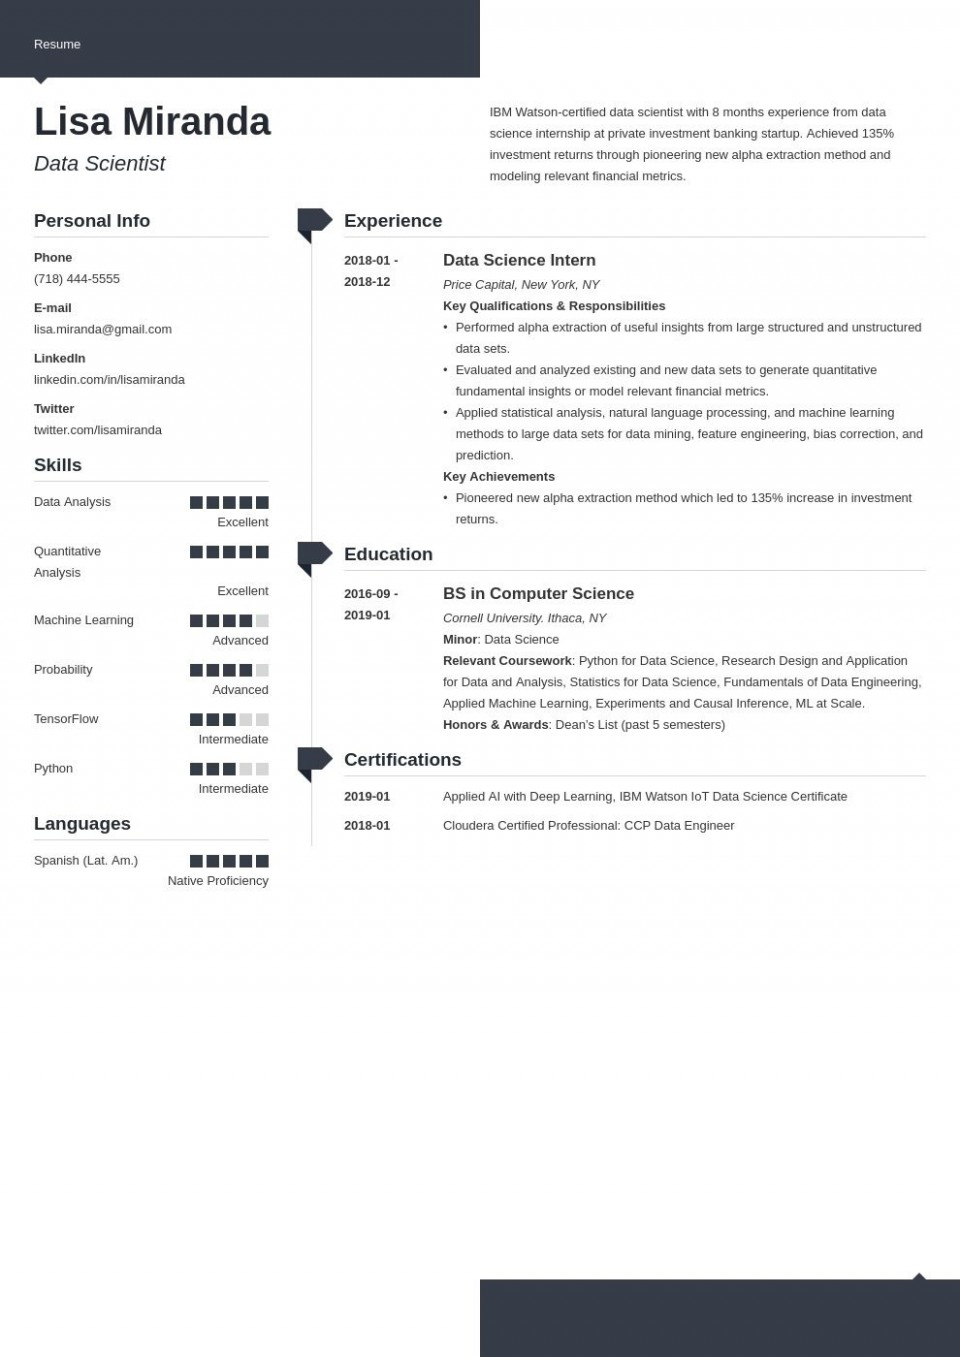 005 Incredible Recent College Graduate Resume Template Image  Word960